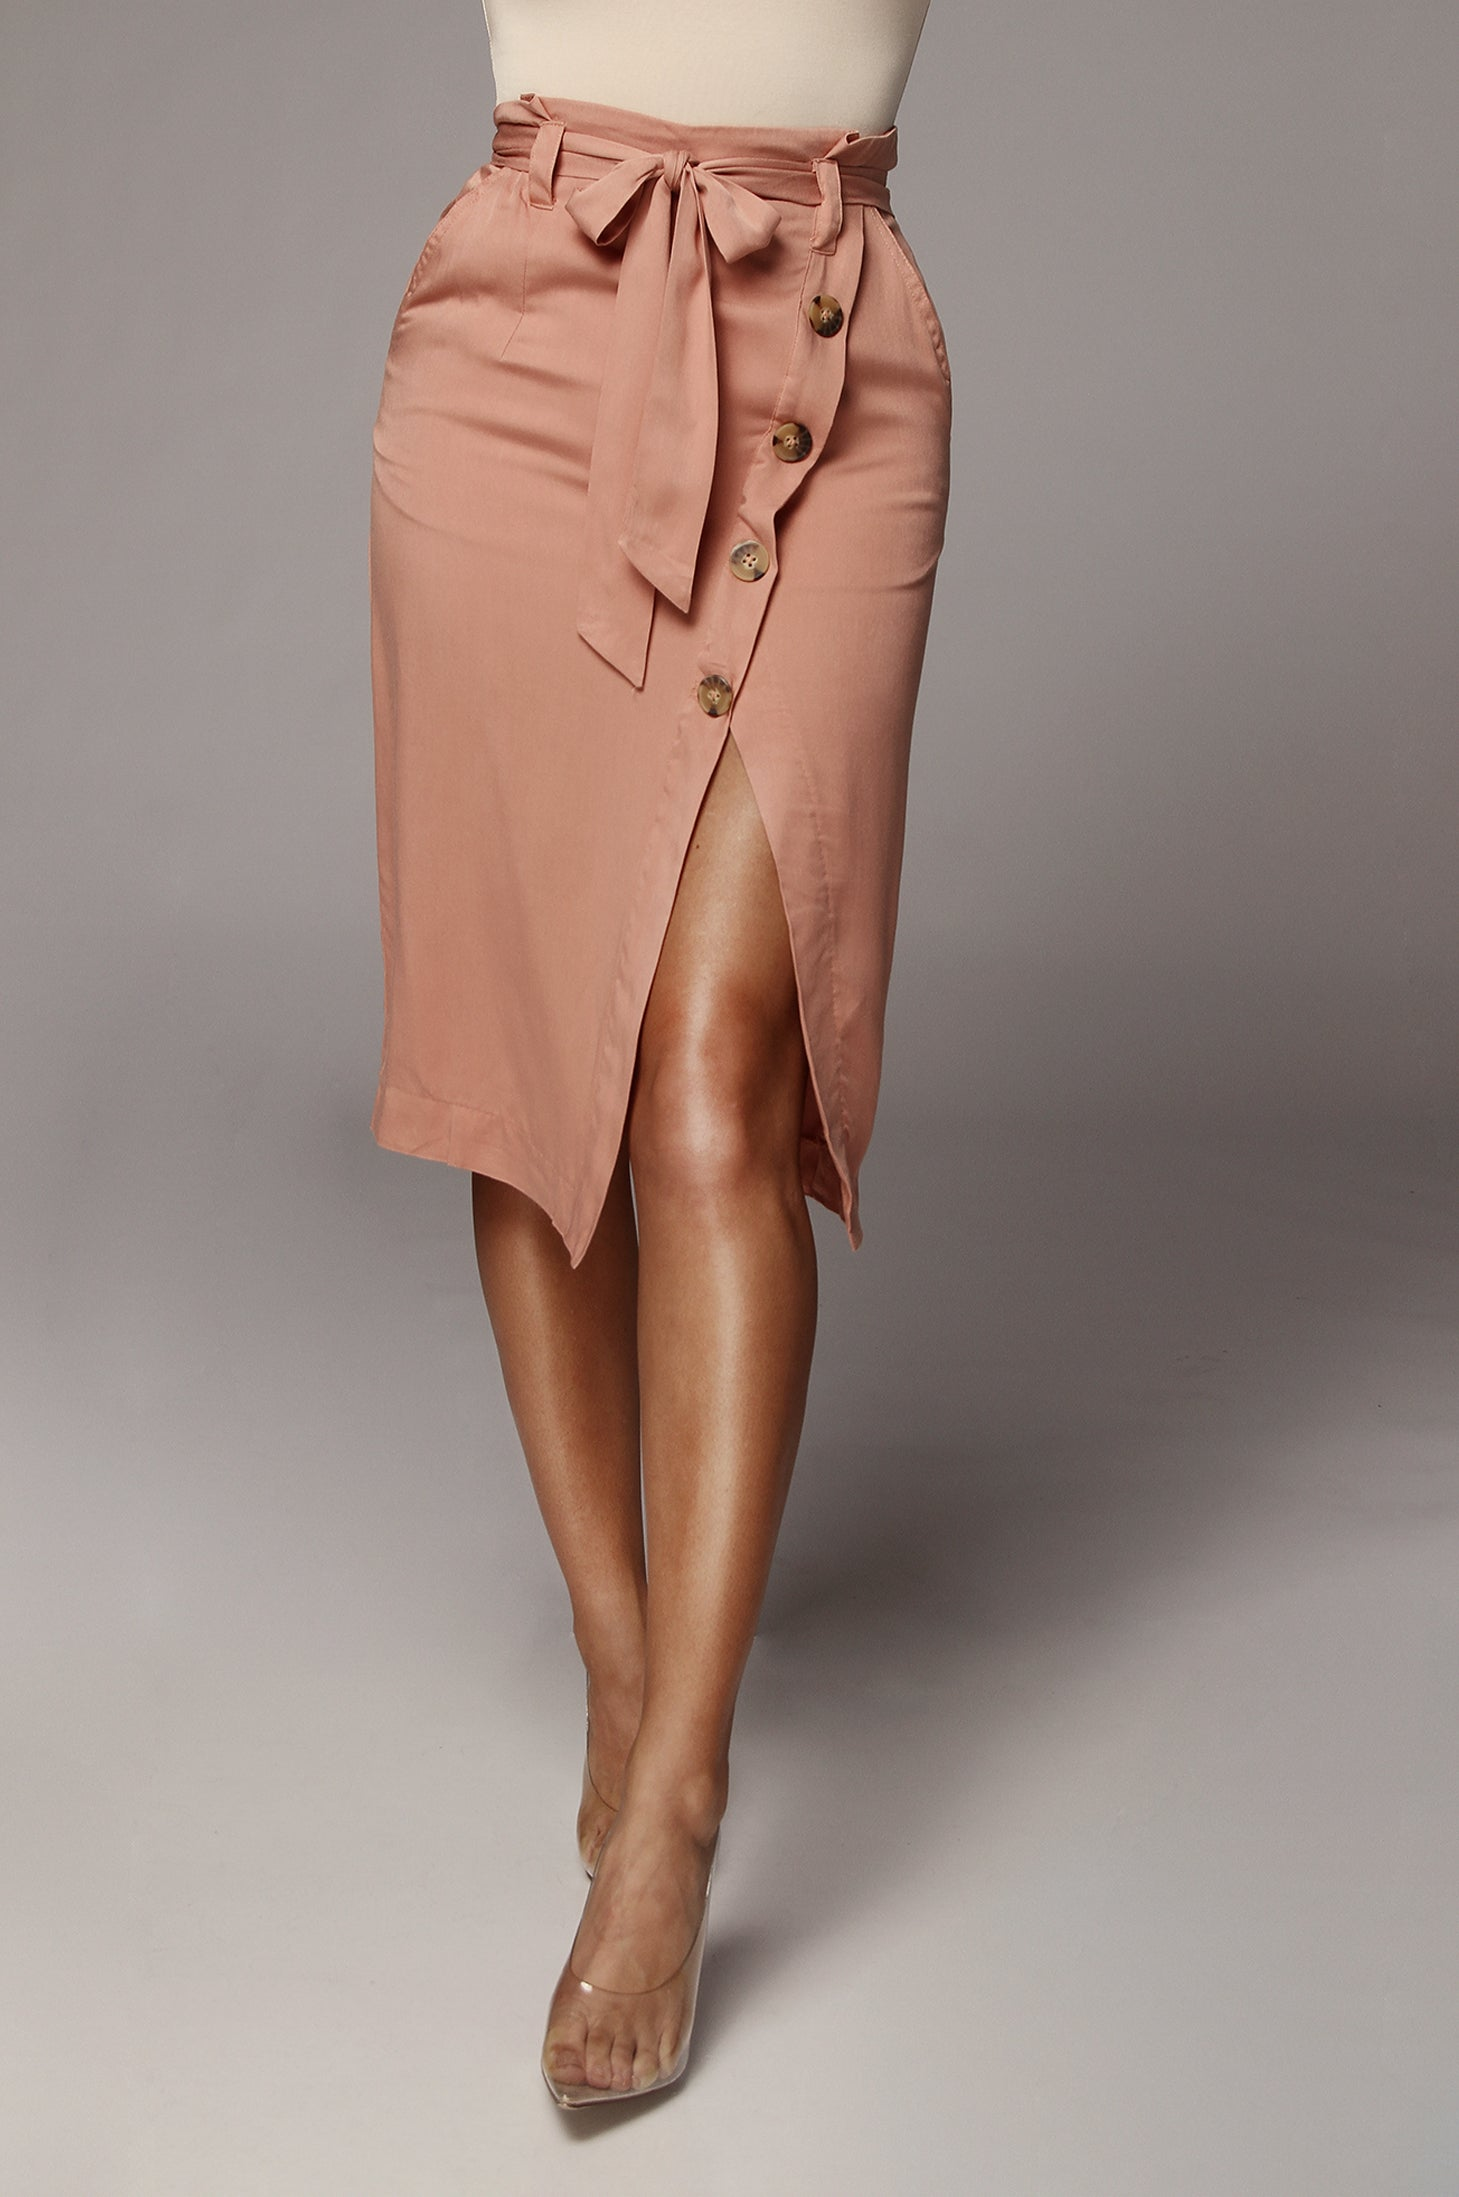 Rose Annie Button Up Pencil Skirt